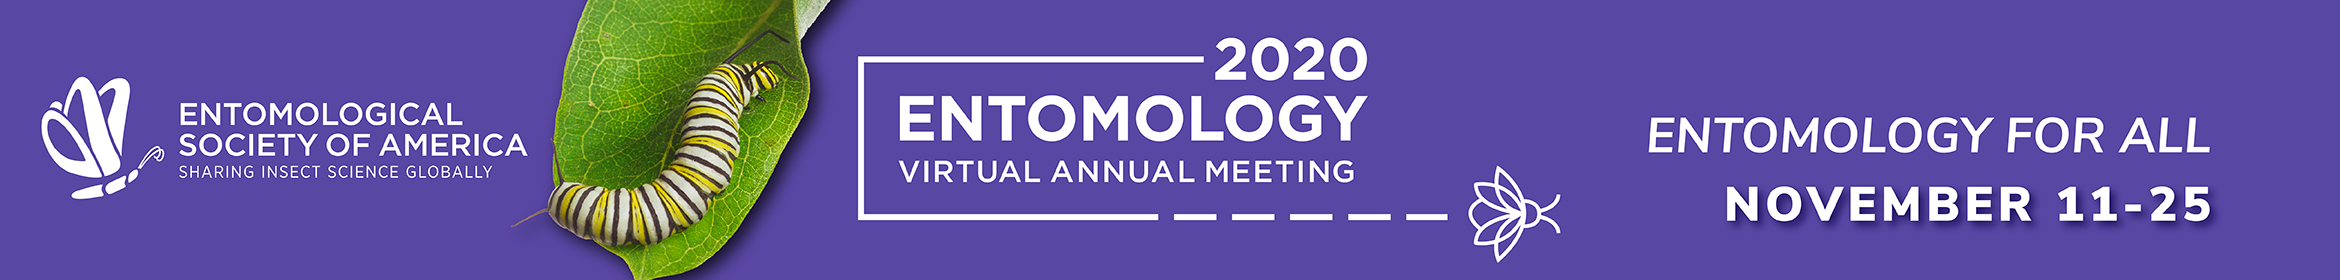 Entomology 2020 Main banner